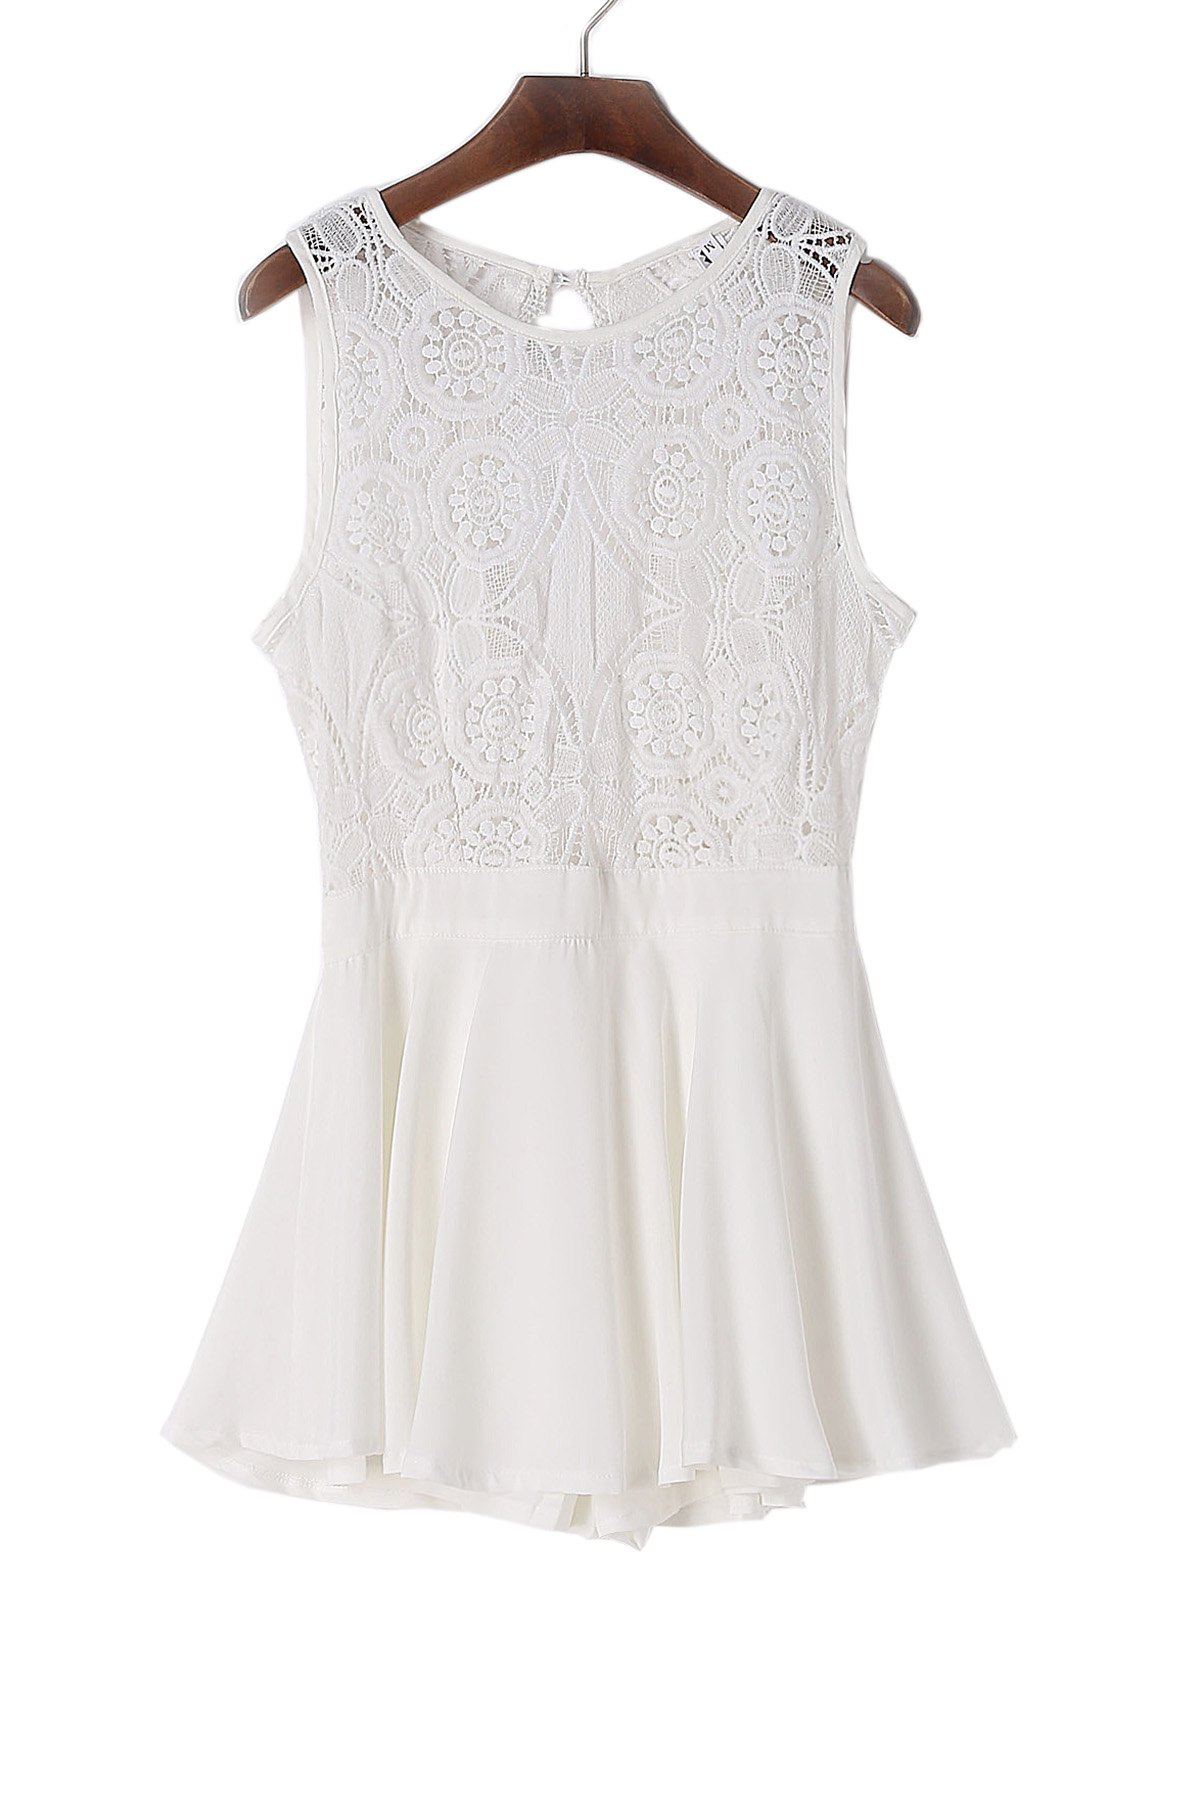 Chic Round Neck Sleeveless Hollow Out Backless Women's Romper - WHITE S